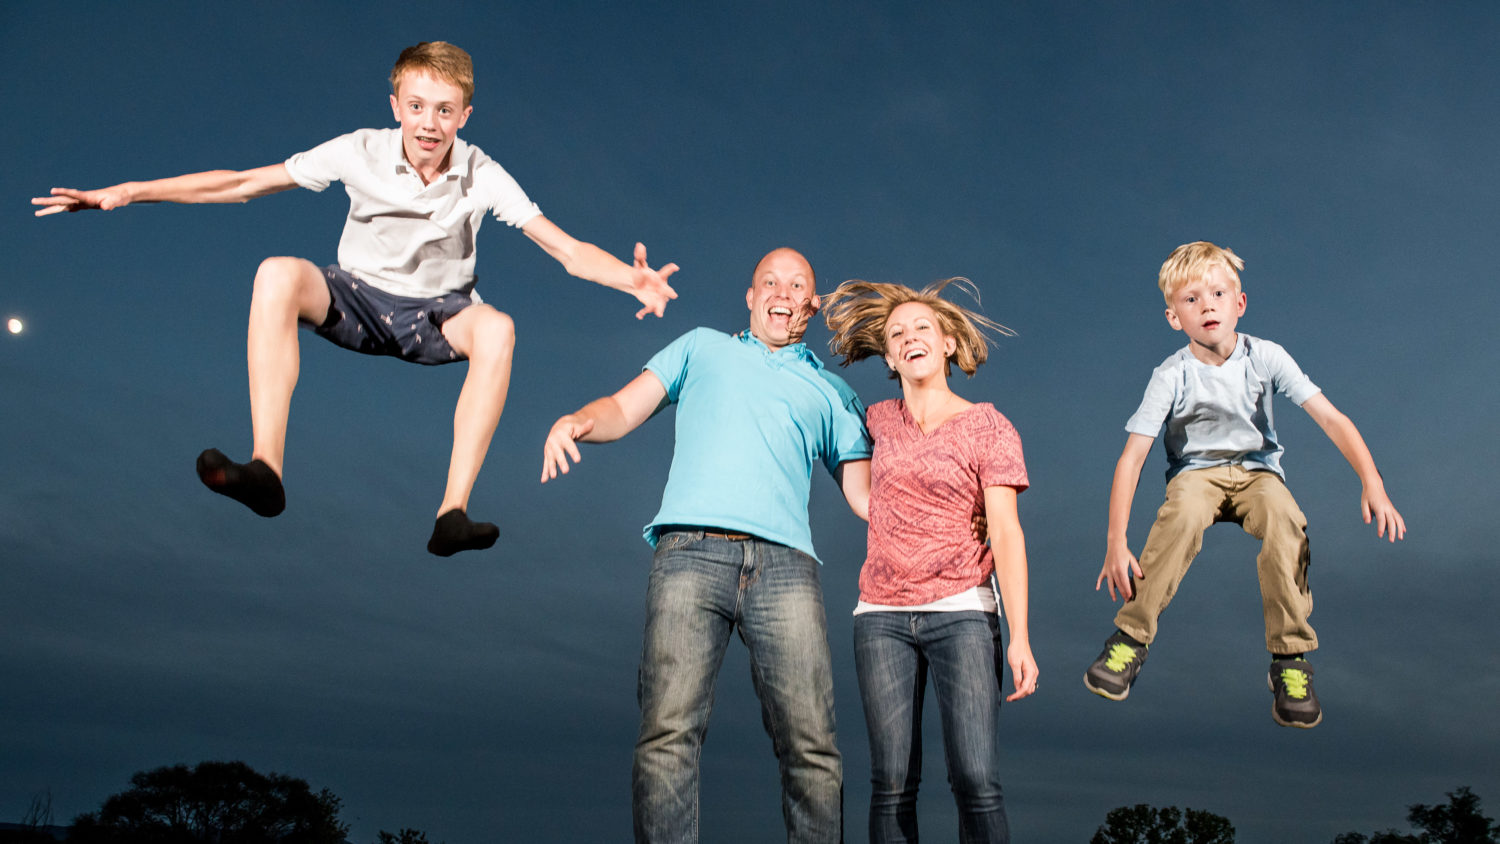 Fun family photos on trampoline